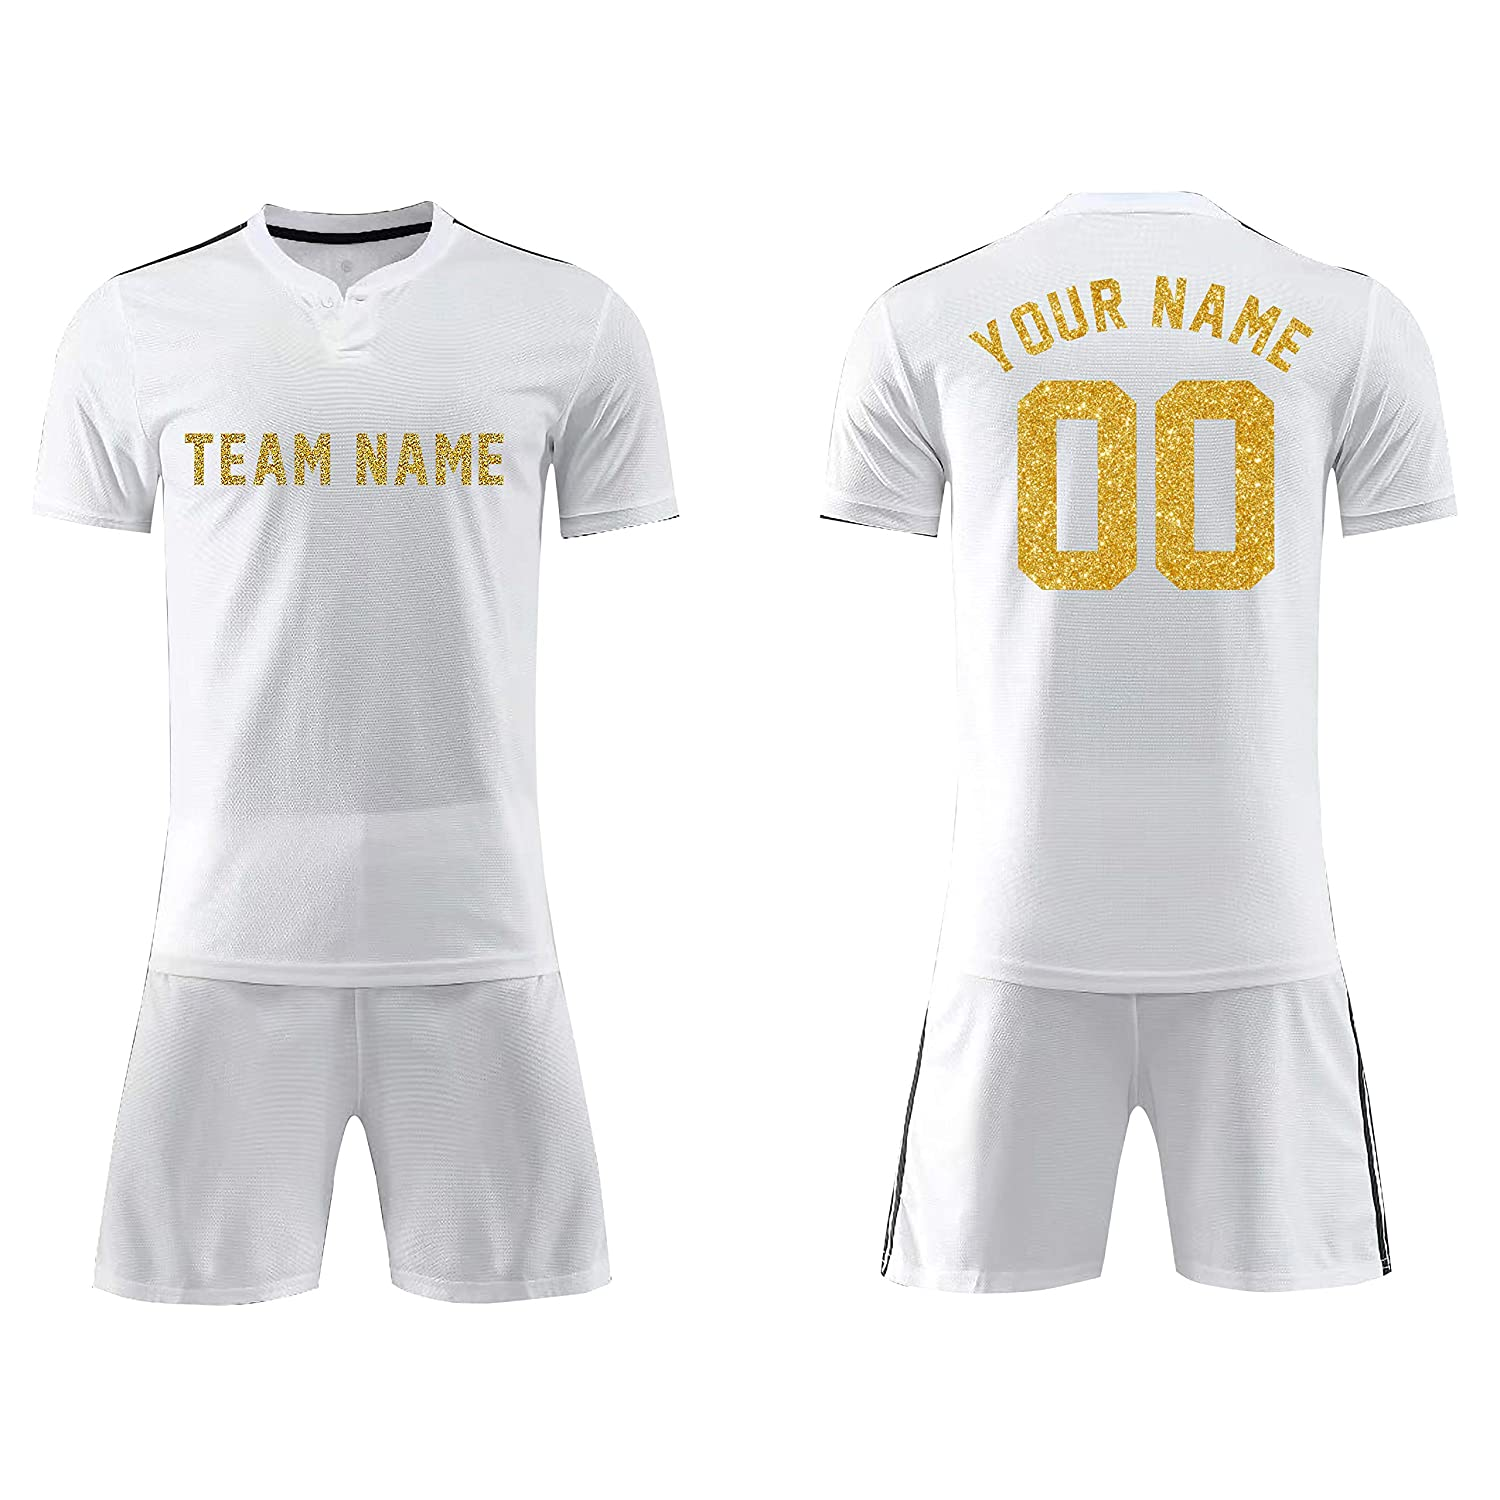 SPORTLAUKEXIN Custom Training Soccer Jersey,Personalized Any Name Number Soccer Jersey /& Shorts,Custom Player,Sports Uniforms